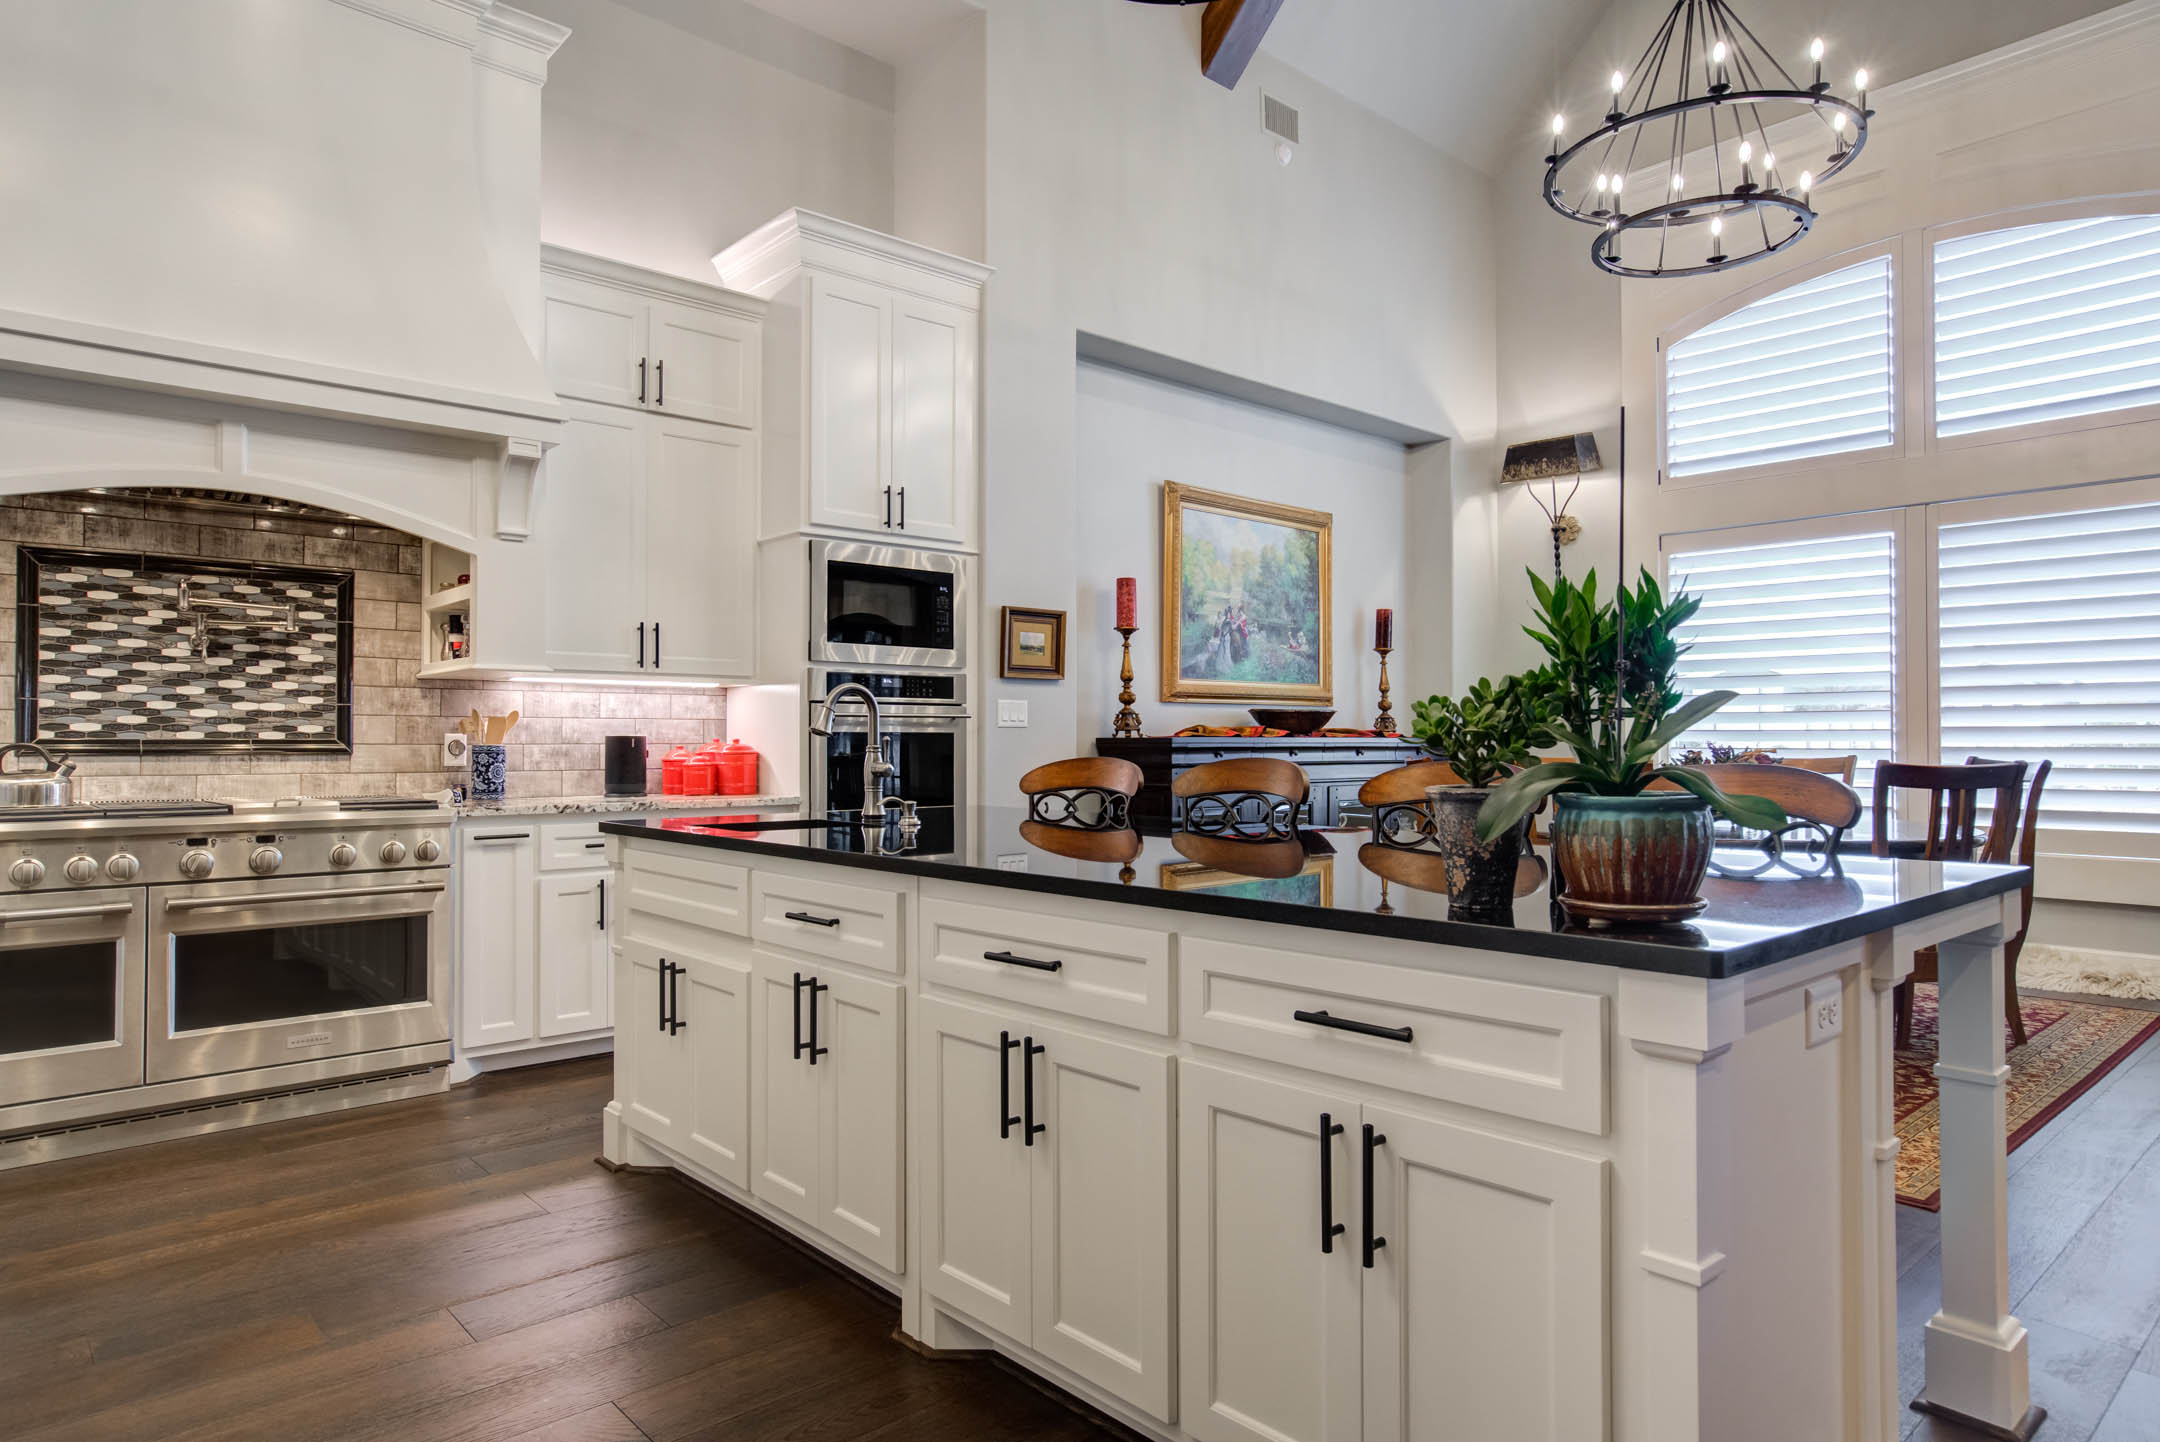 Center island in kitchen of custom home in Lubbock, Texas.